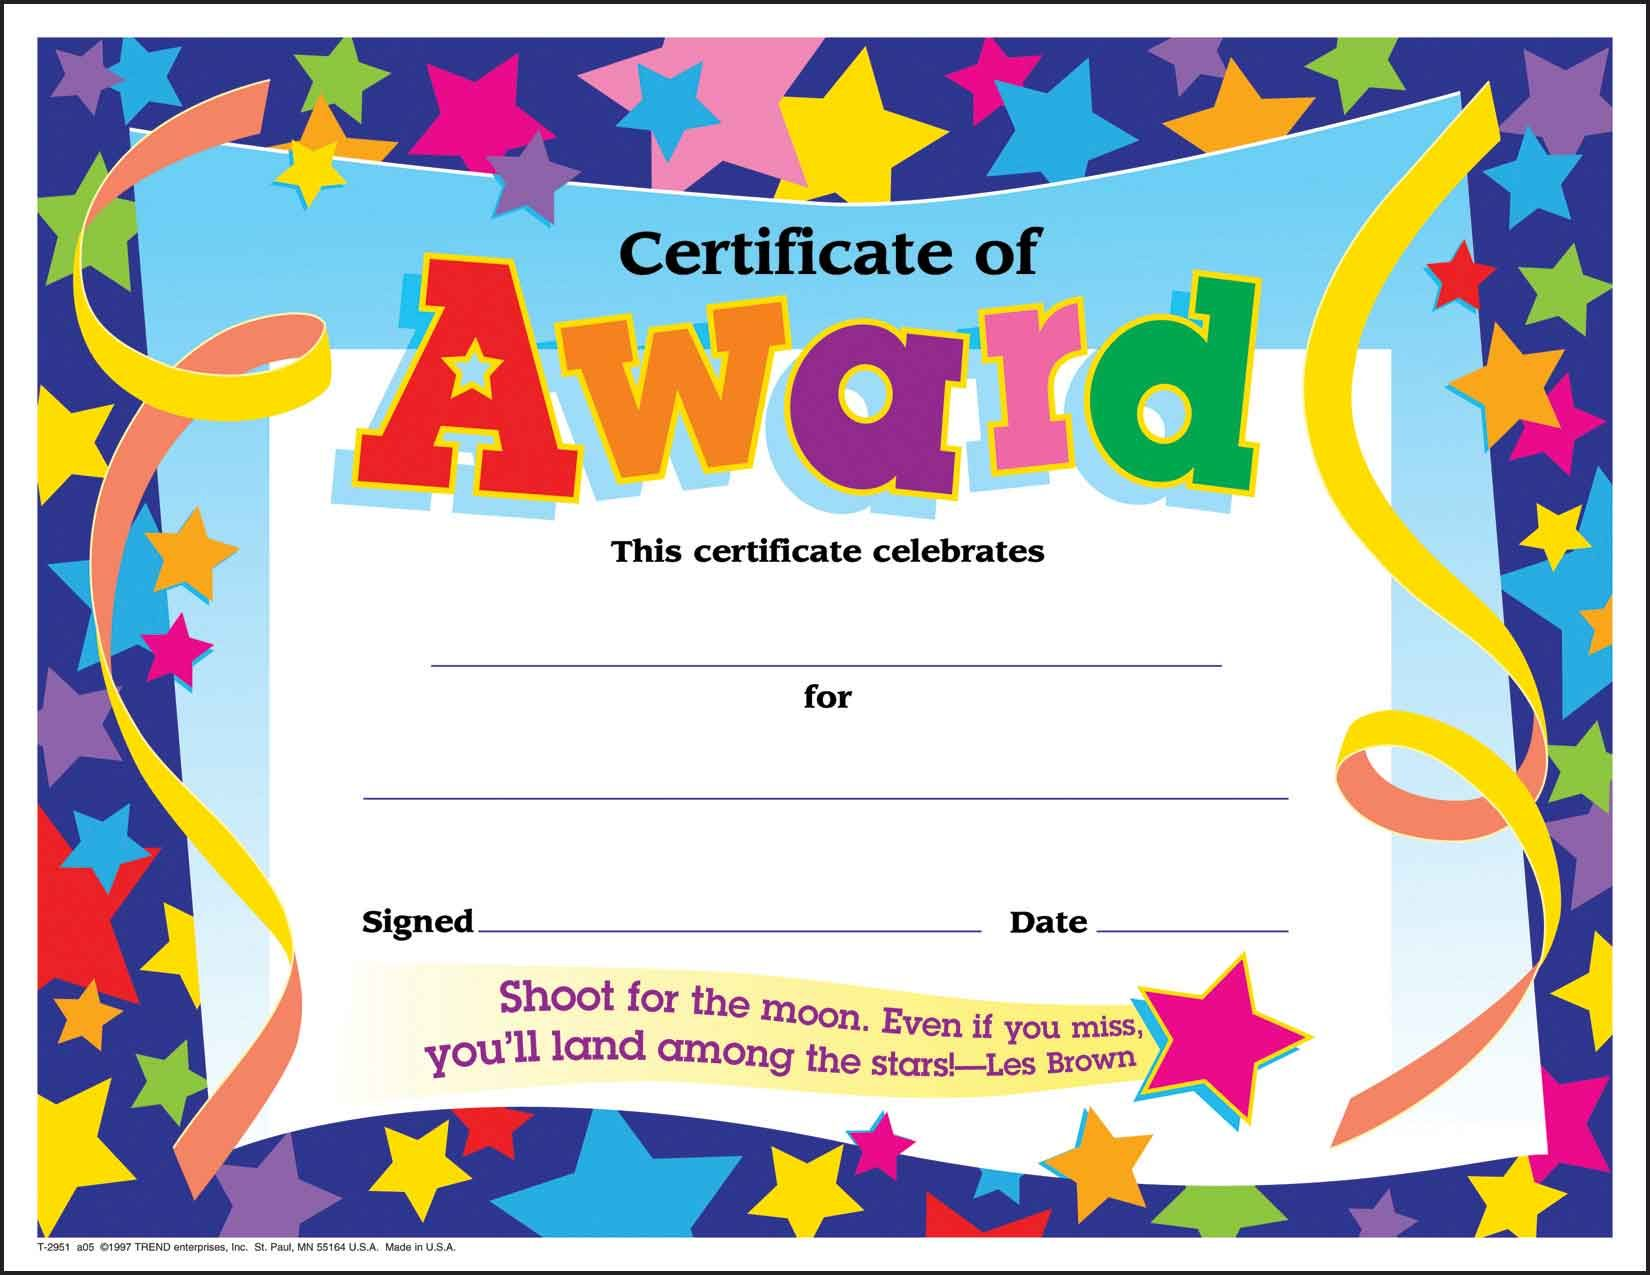 baby certificate maker – Certificates Free Download Free Printable